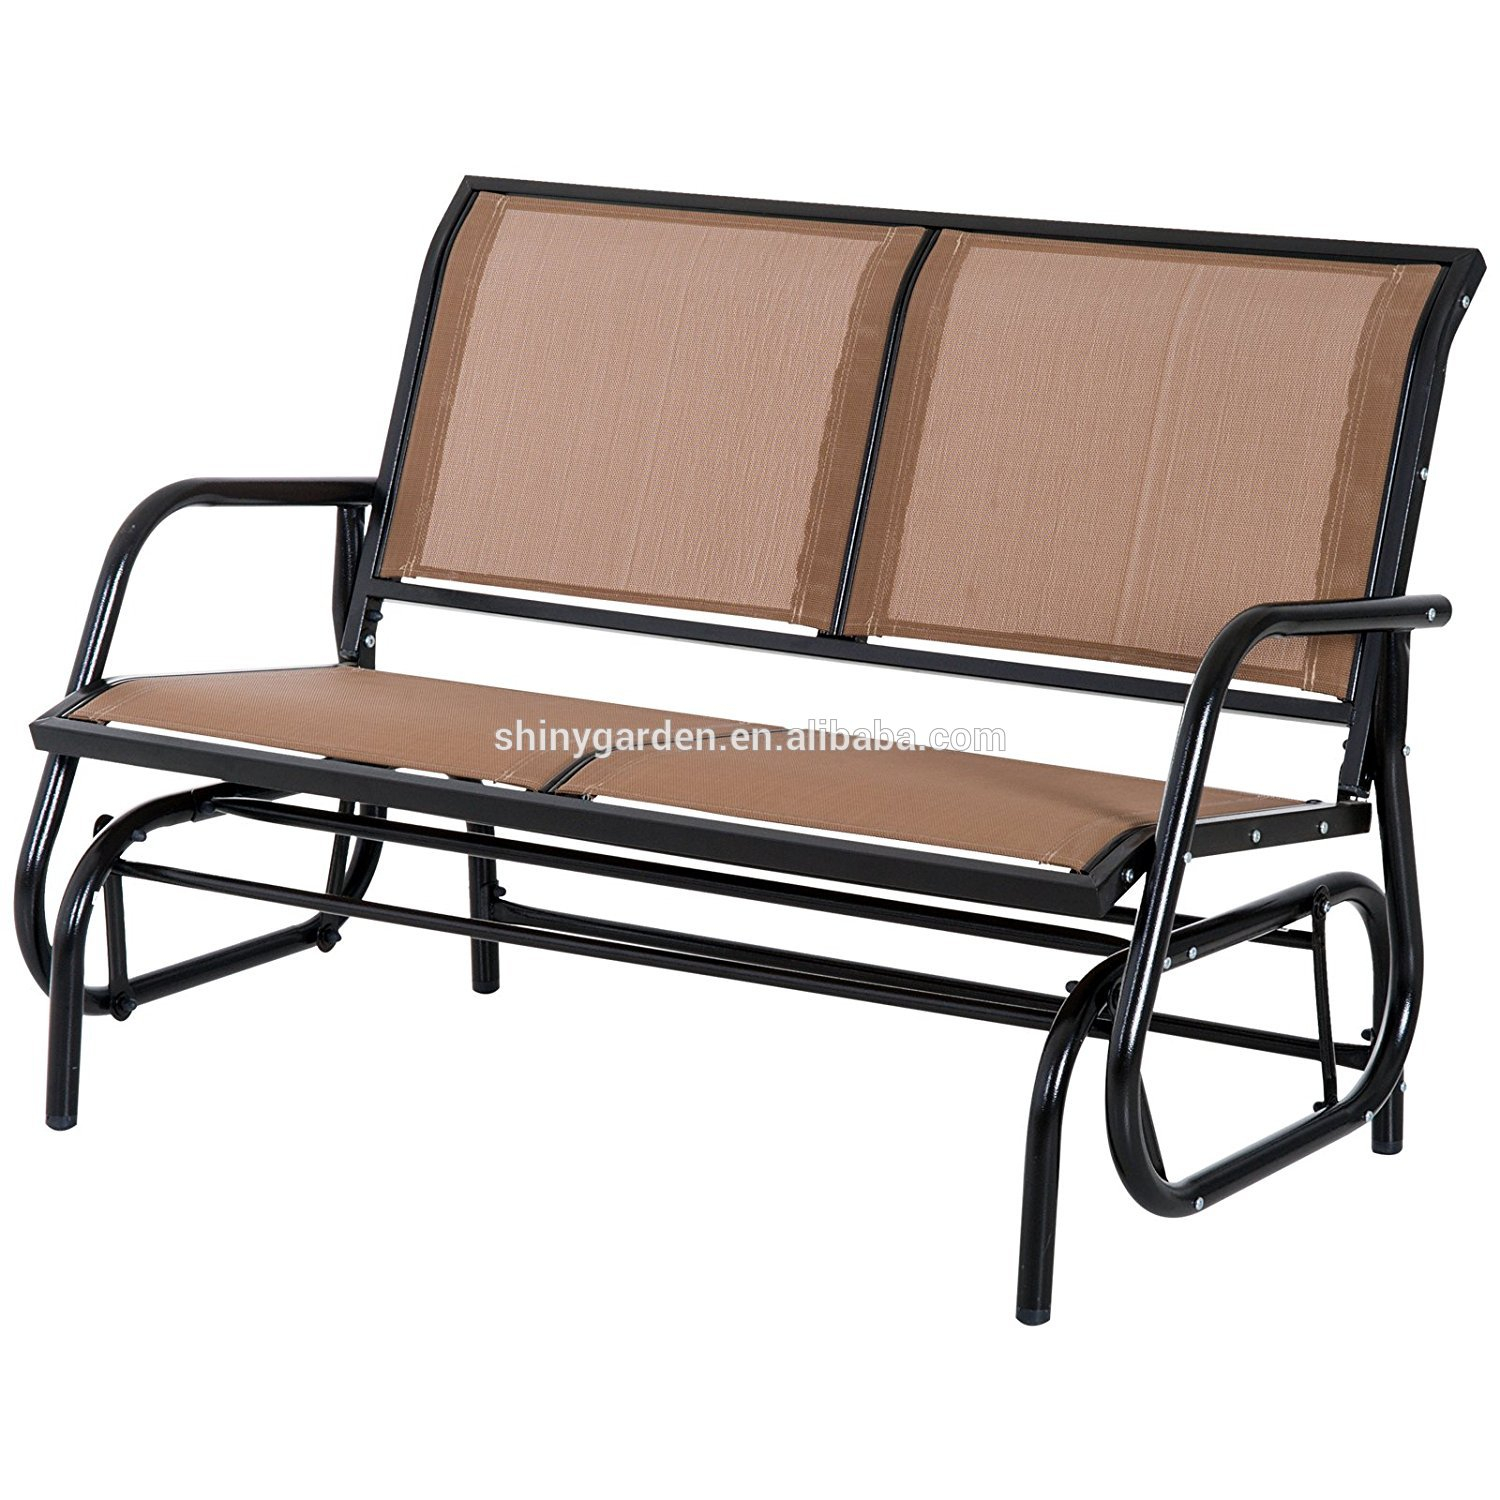 Outdoor Swing Glider Chair,patio Bench For 2 Person,garden Rocking Seating – Buy Swing Glider Chair Product On Alibaba Pertaining To Outdoor Steel Patio Swing Glider Benches (View 10 of 25)